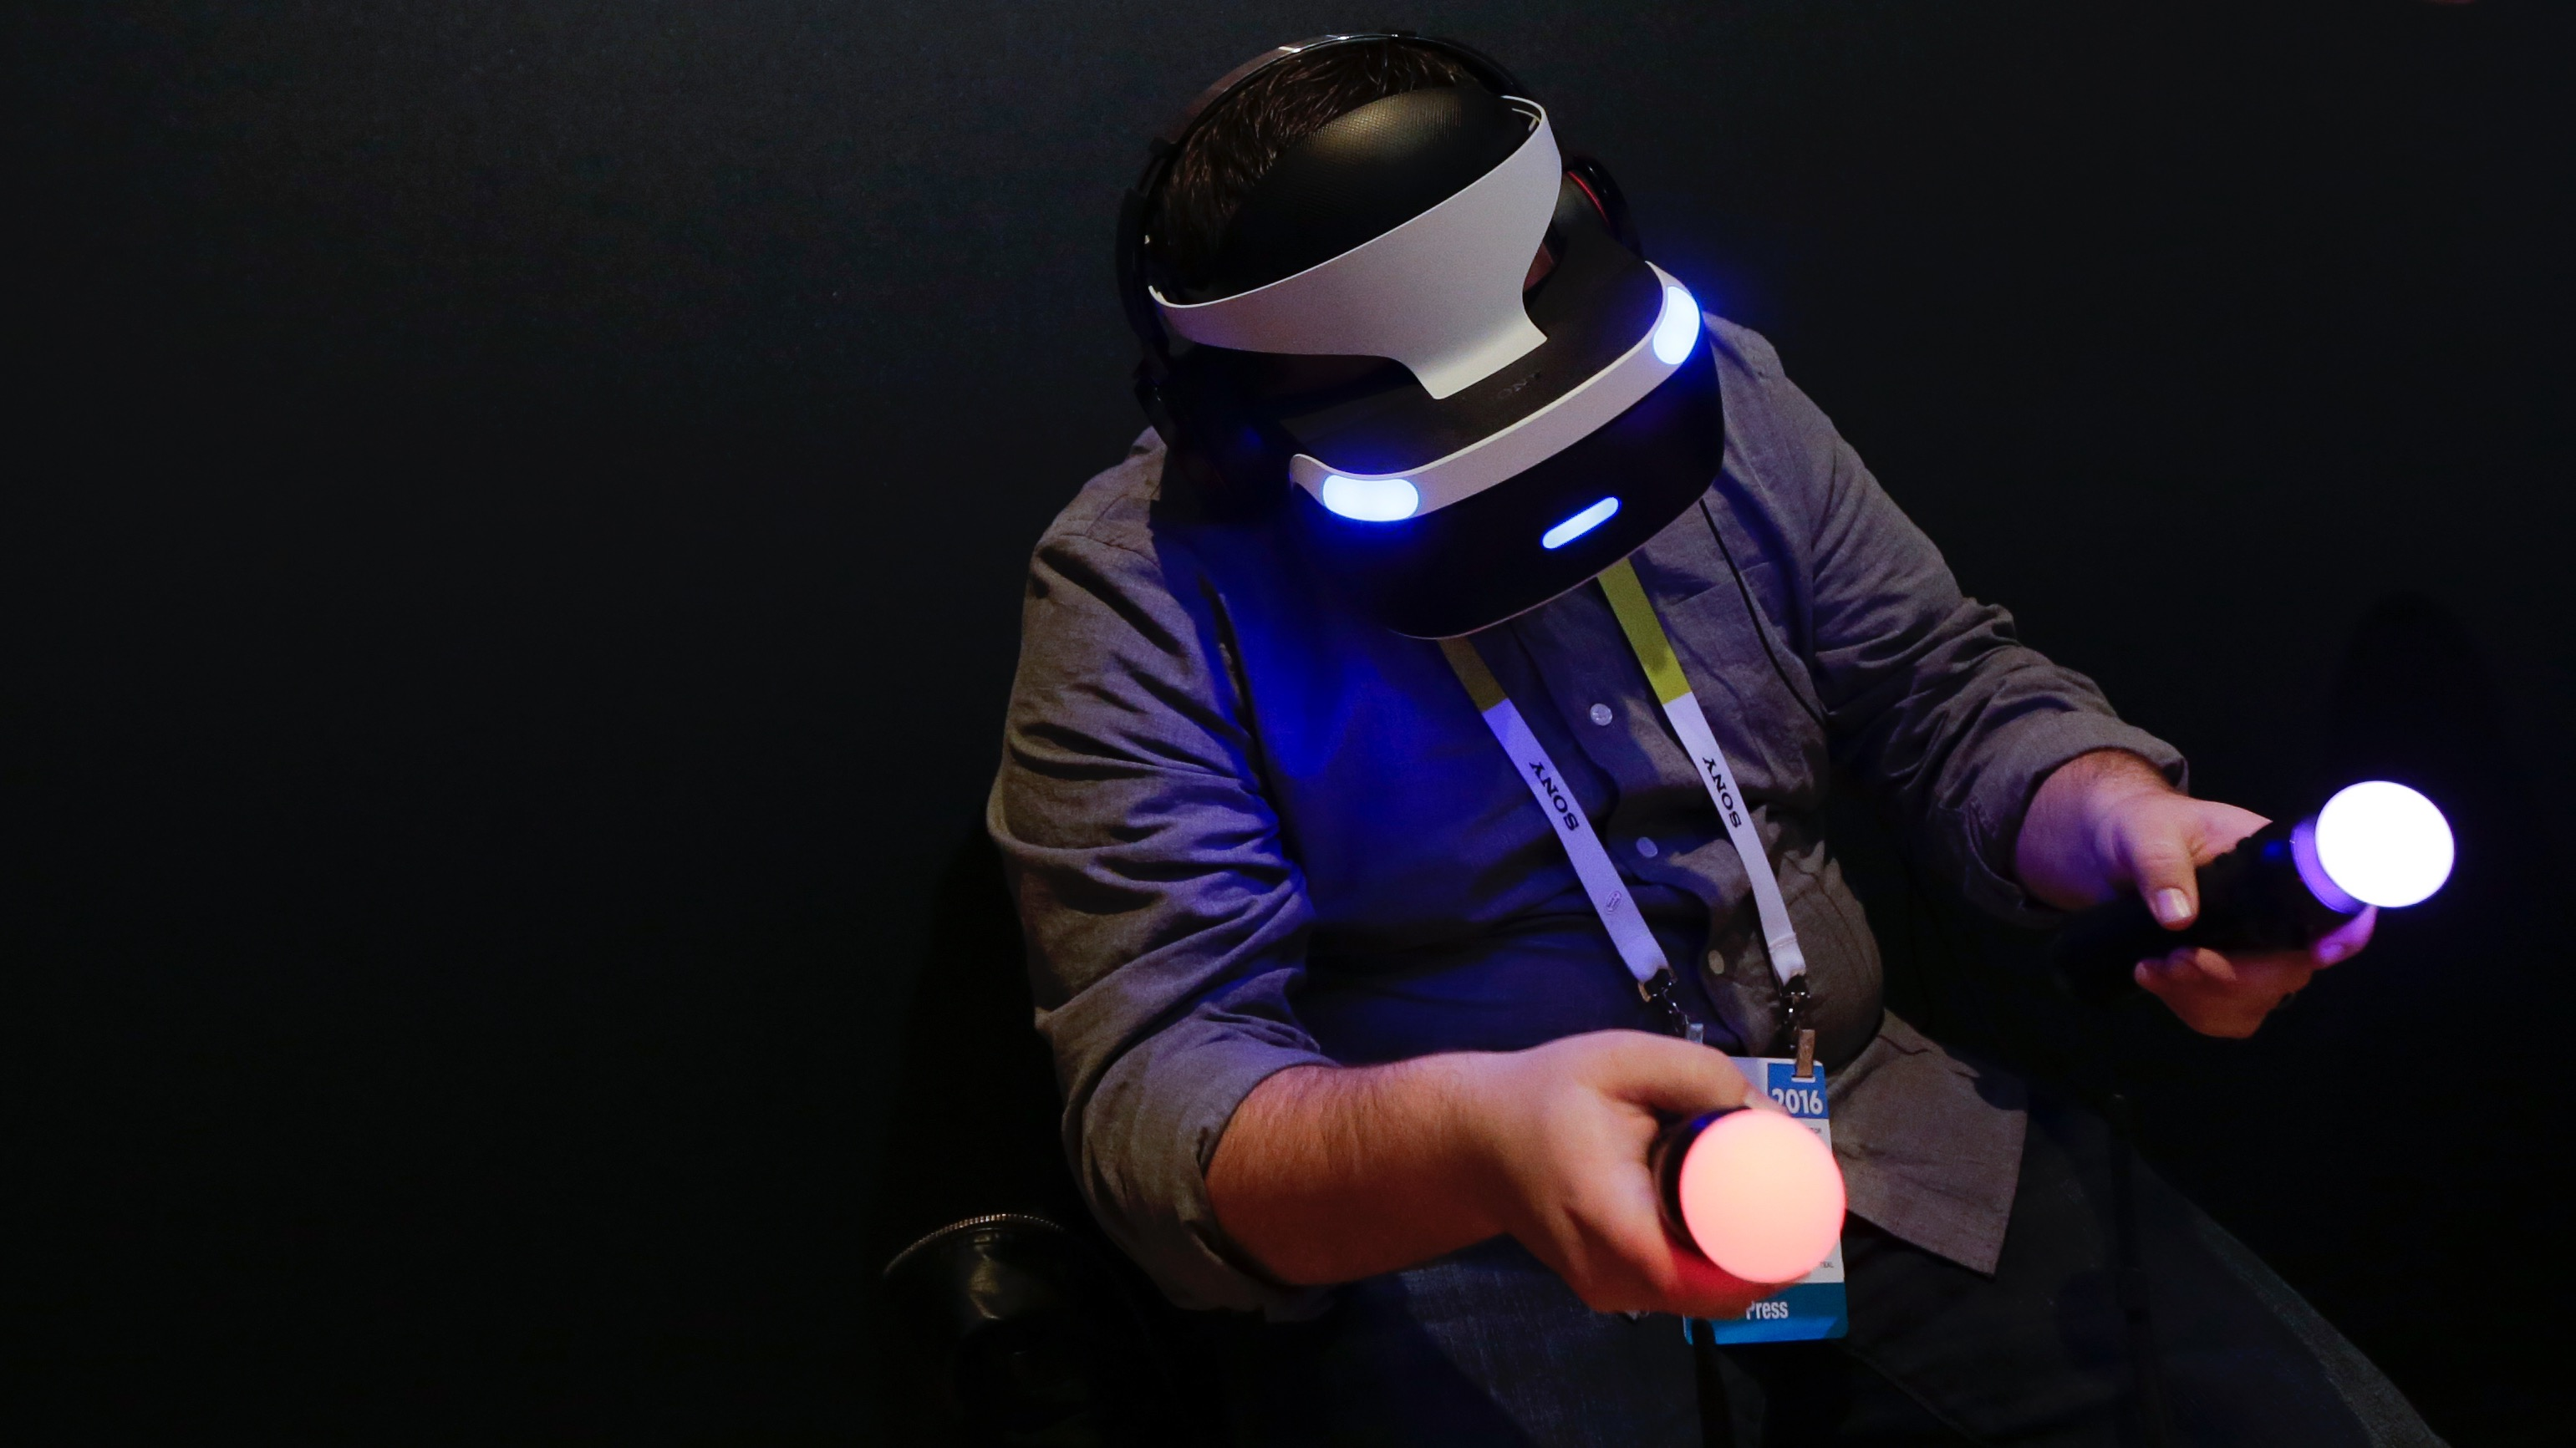 """William Mansell plays the video game, """"Until Dawn: Rush of Blood,"""" on a Playstation VR device during a news conference preview for CES International Tuesday, Jan. 5, 2016, in Las Vegas. (AP Photo/Gregory Bull)"""